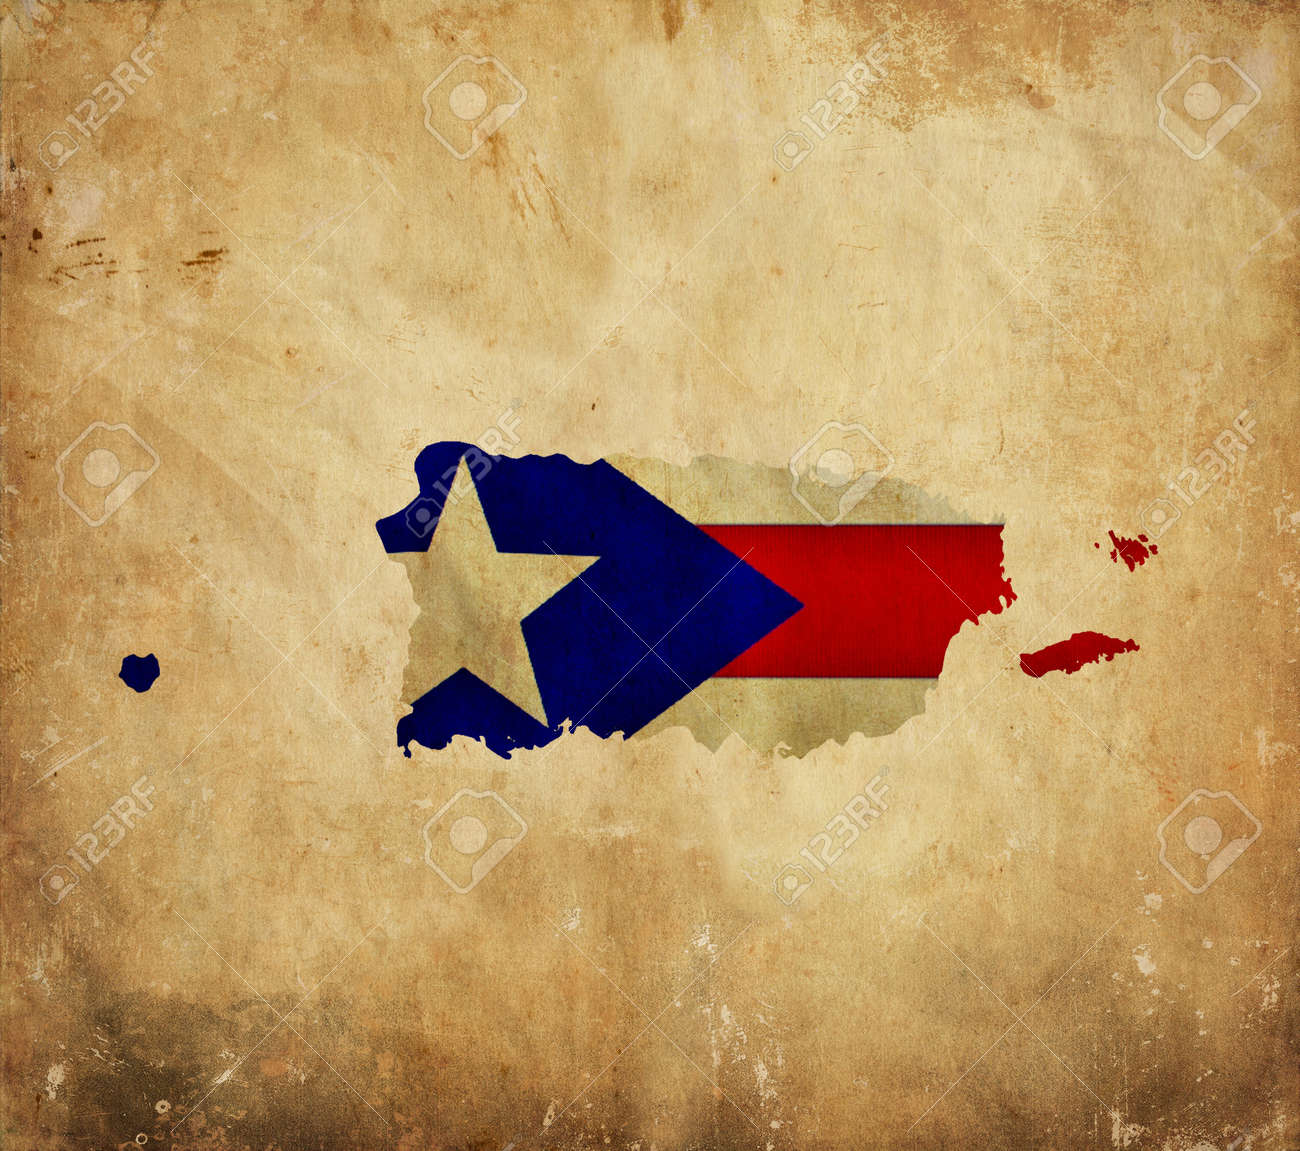 Vintage Map Of Puerto Rico On Grunge Paper Stock Photo, Picture And ...